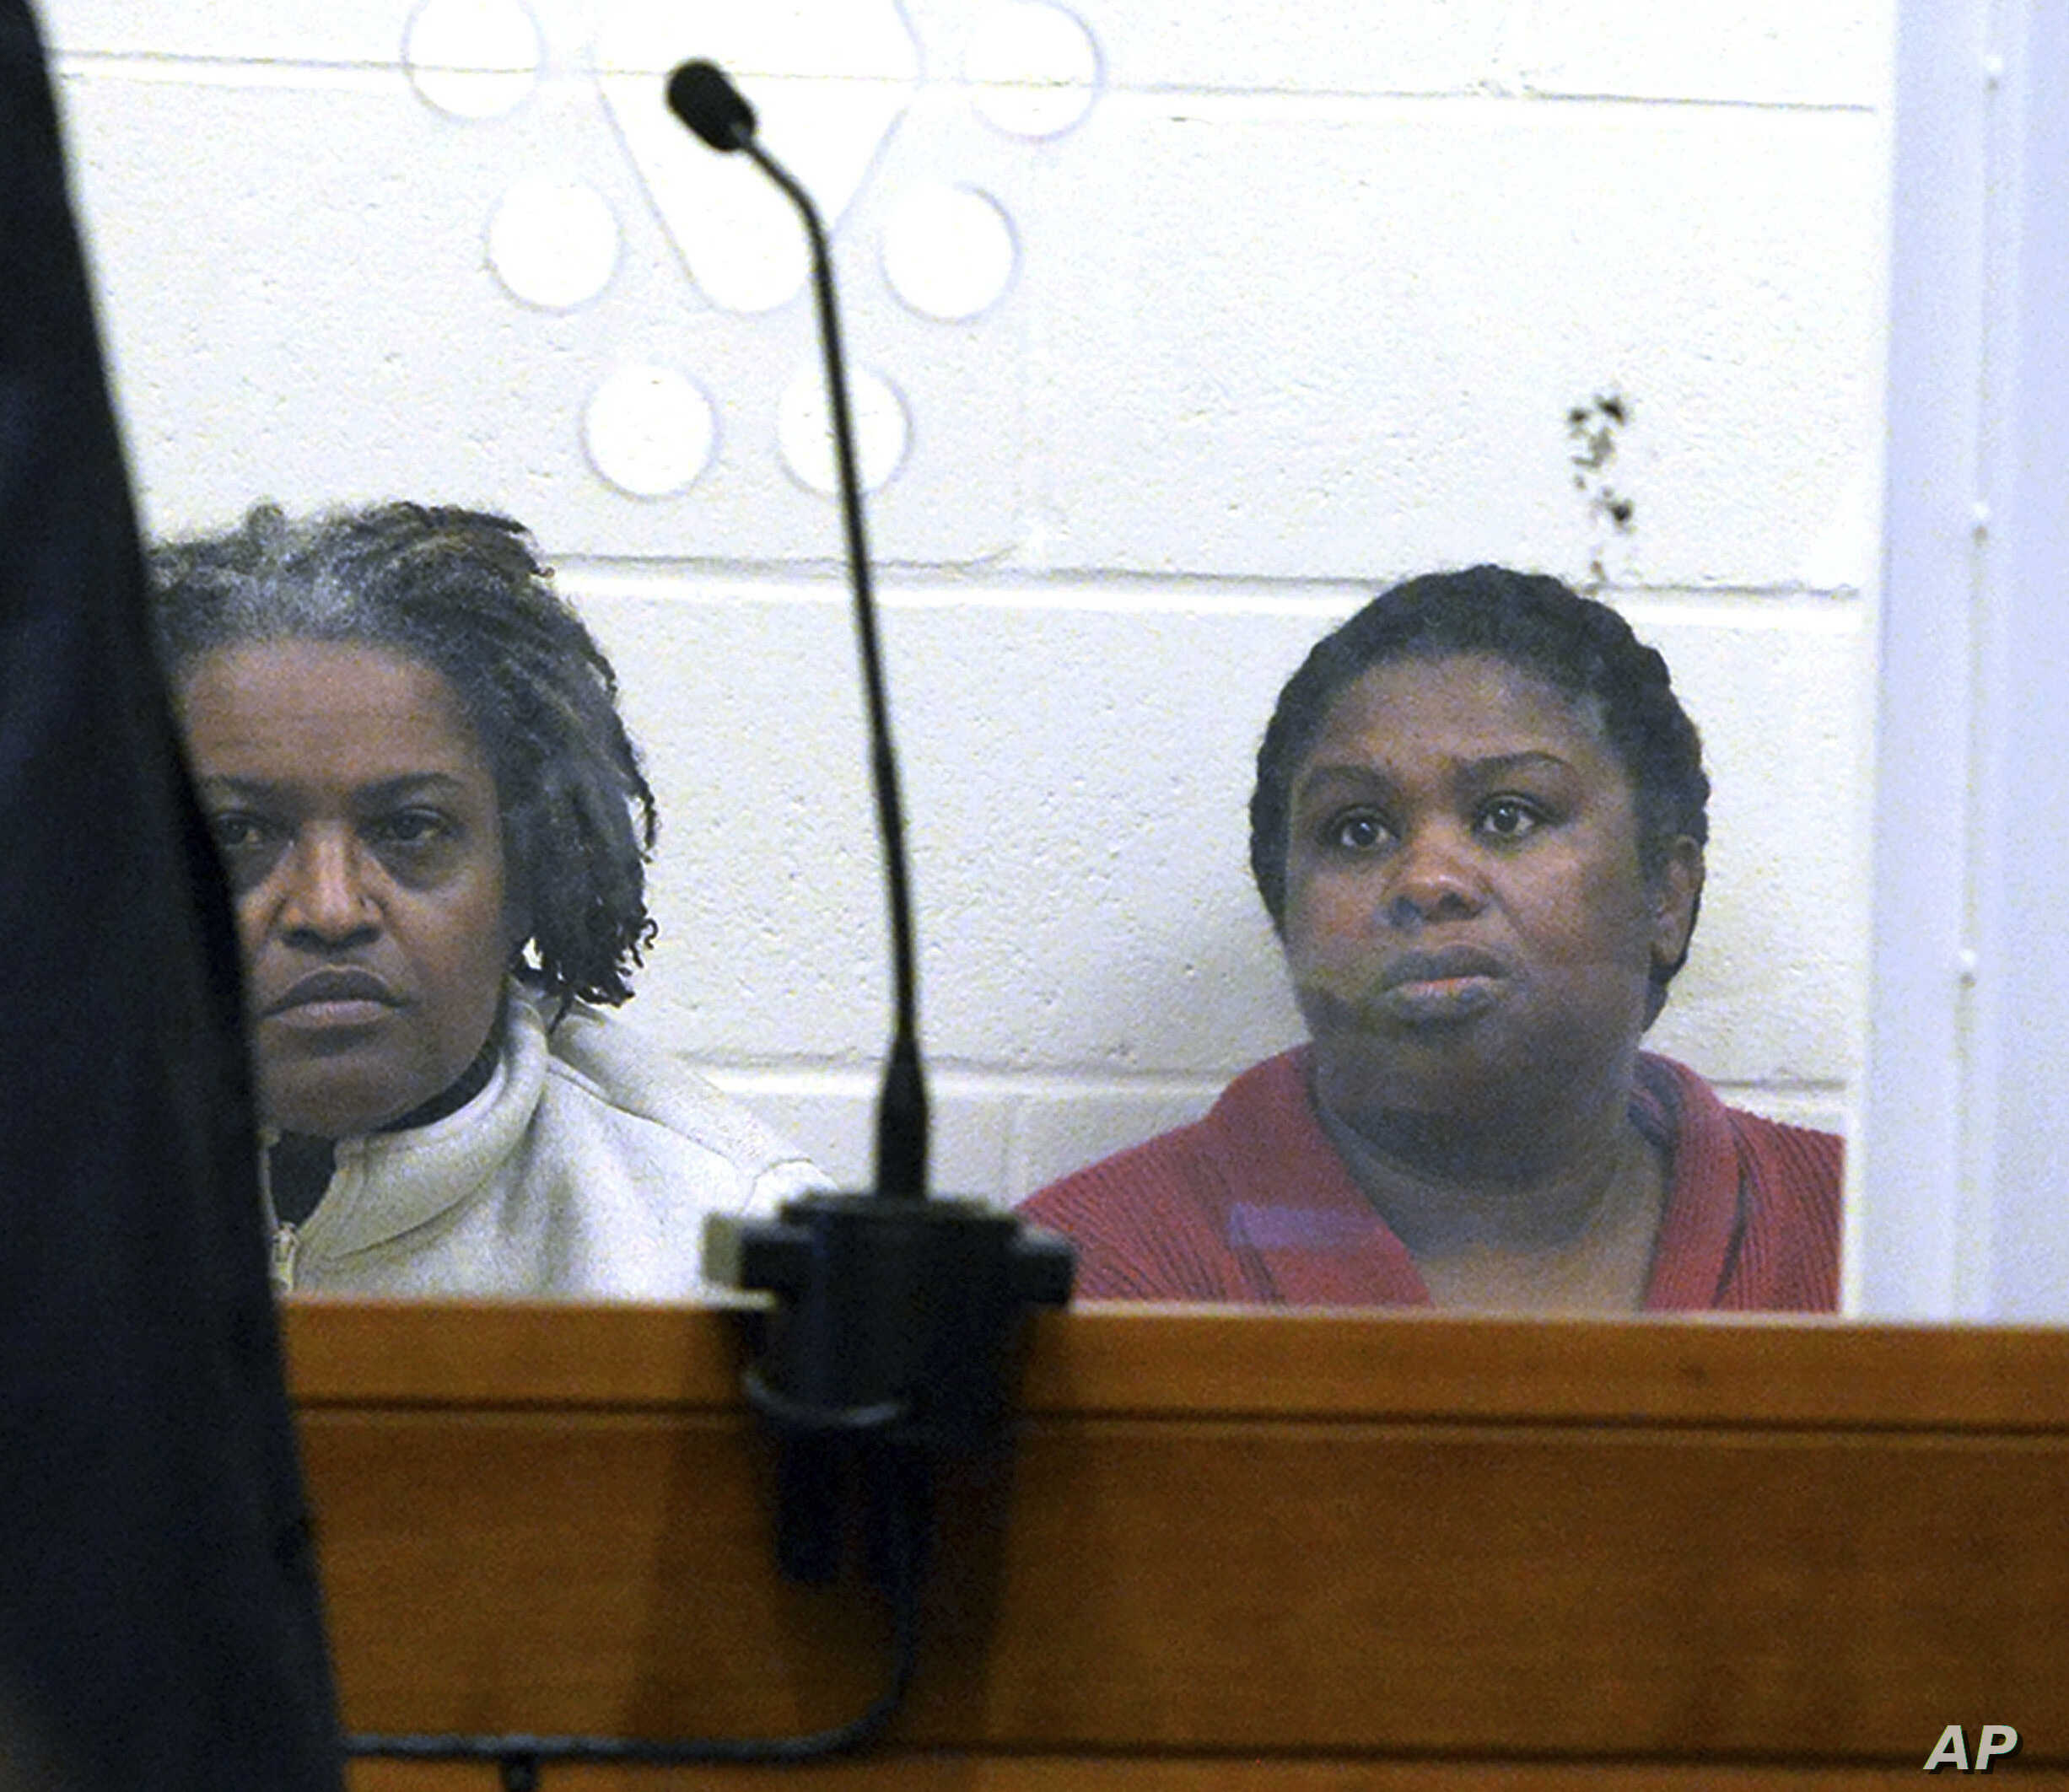 FILE - In this Feb. 1, 2018 file photo, sisters Rachel Hilaire and Peggy LaBossiere sit in Brockton District Court in Bridgewater, Mass., charged with tying down and burning a 5-year-old girl, permanently disfiguring her, in a voodoo ritual meant to ...